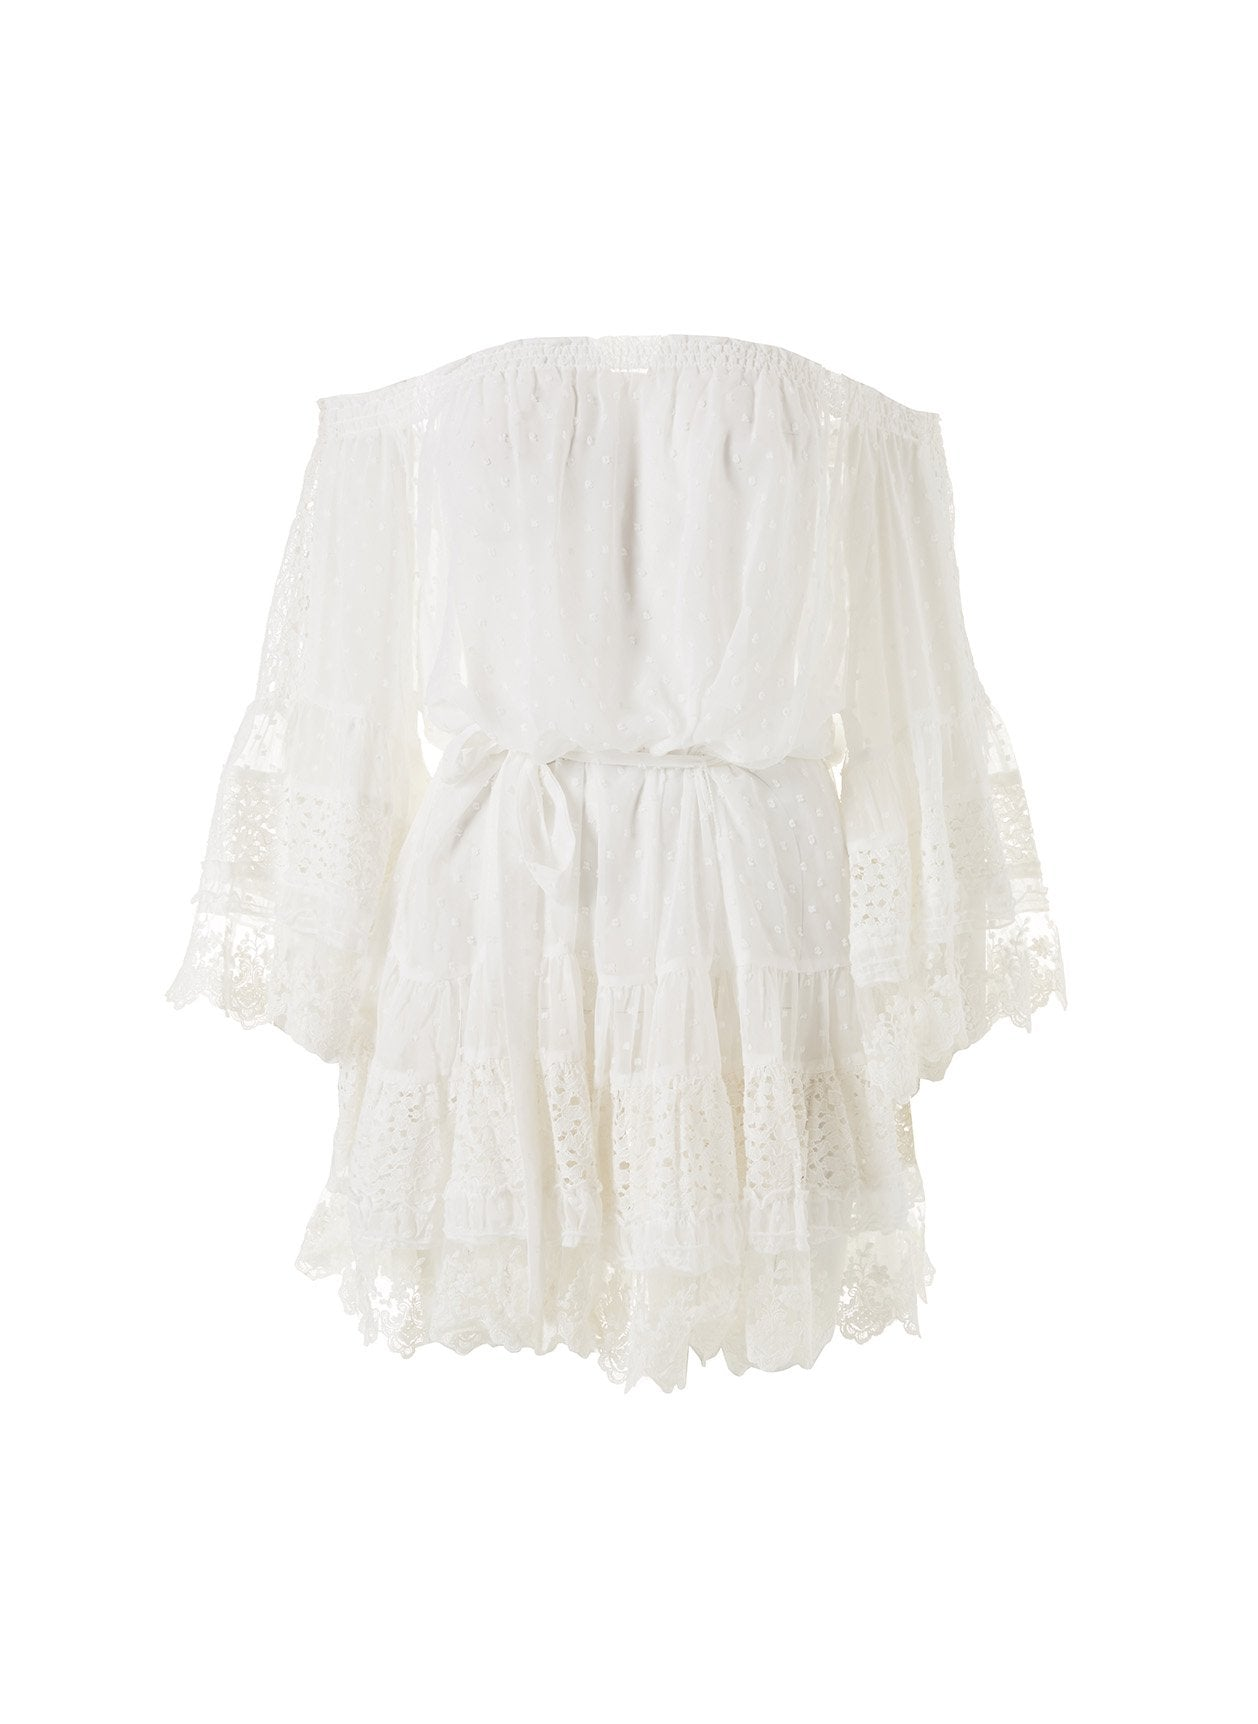 Alice White Lace Off The Shoulder Dress 2020